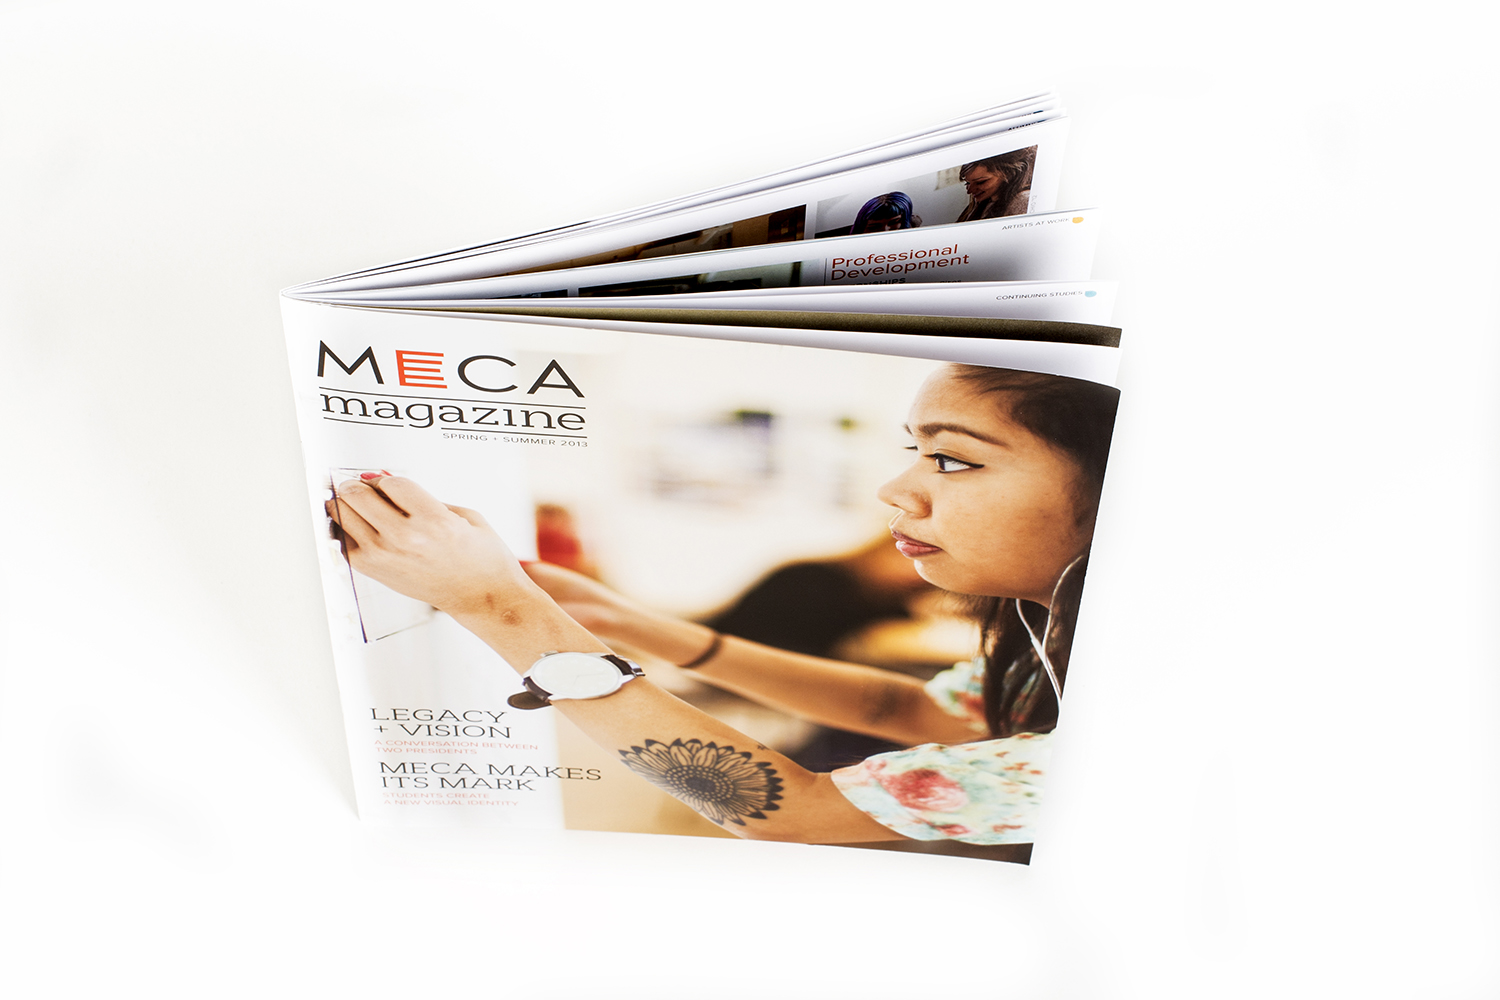 MECA Magazine, Issue 1, Spring 2013